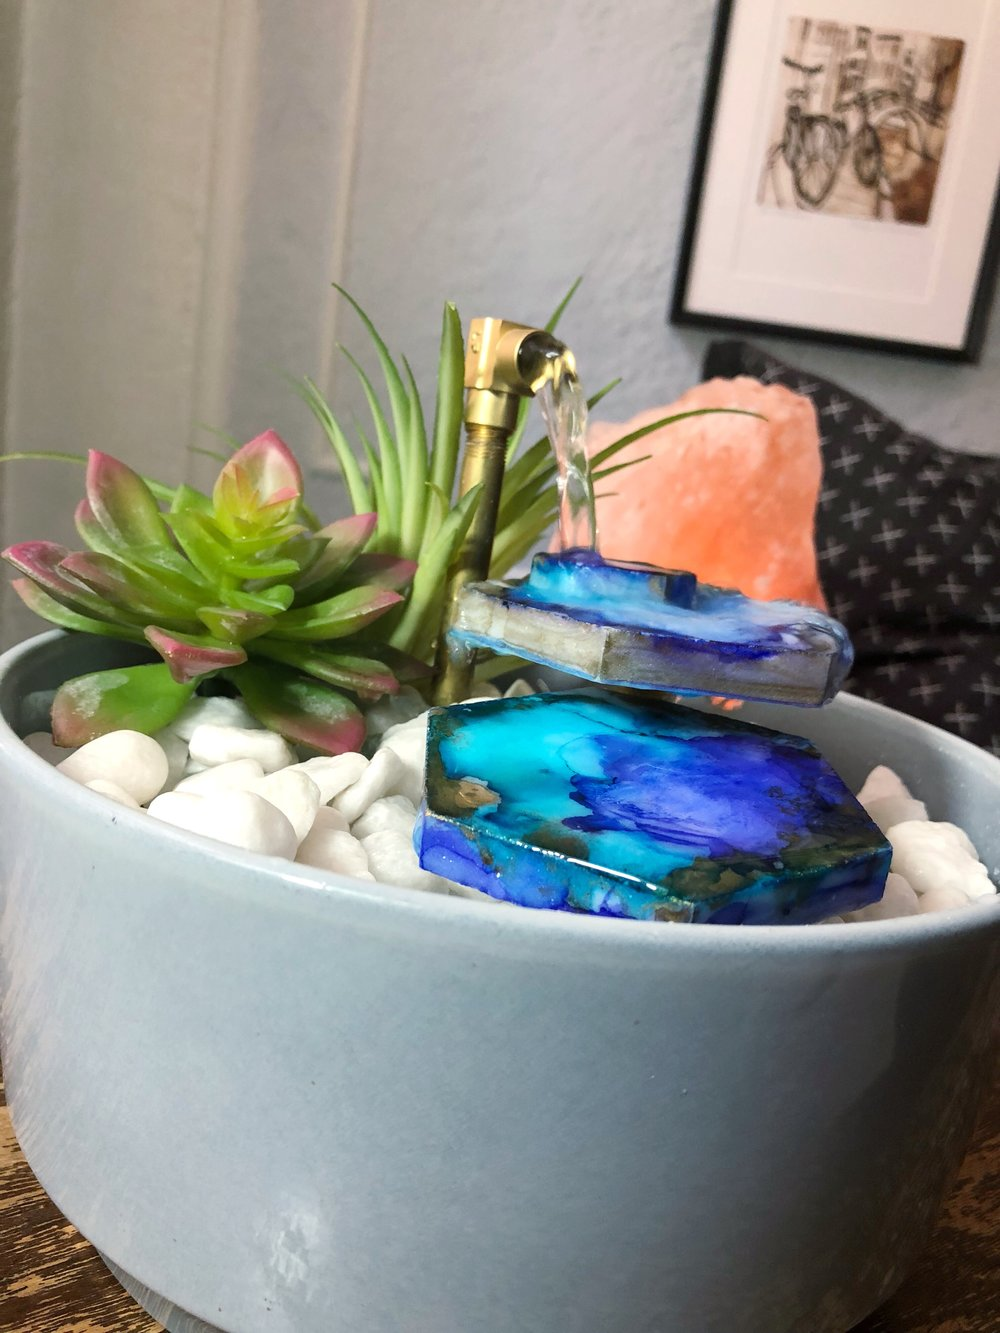 DIY Relaxing Tabletop Fountain-create your own zen garden with a few inexpensive materials.